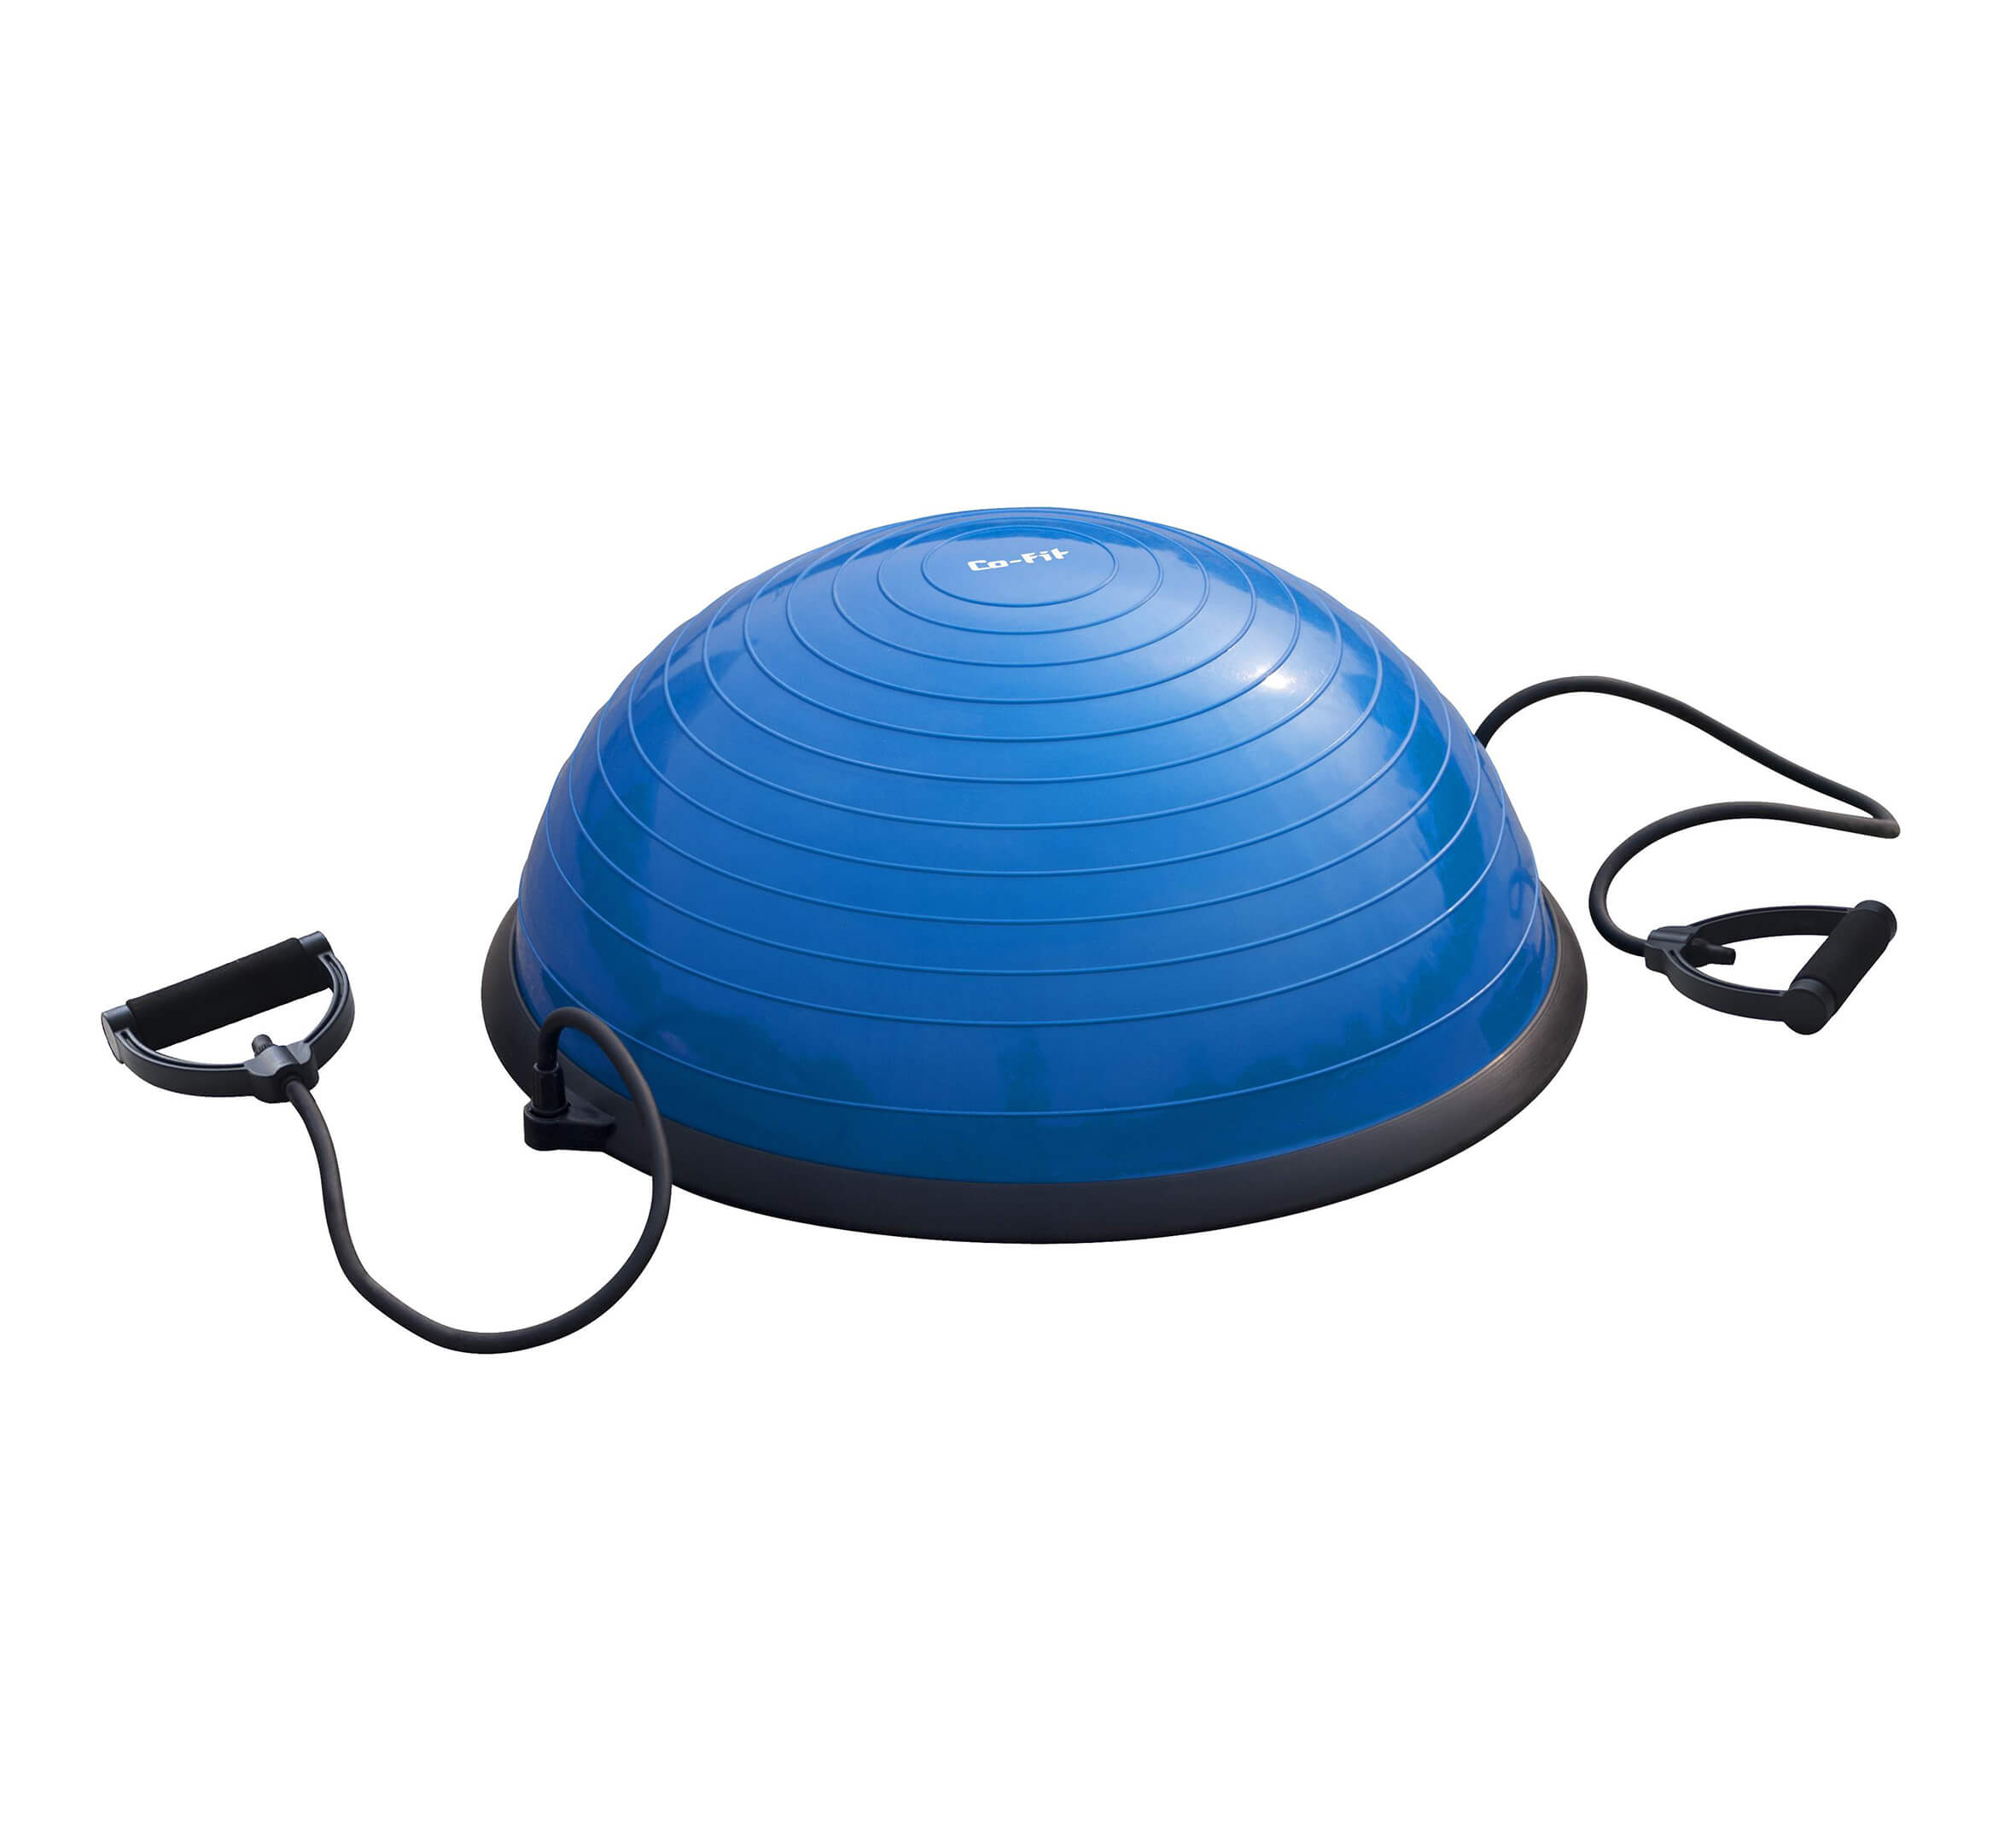 Buy Bosu Ball Accessories Online Accessories Price Offers India